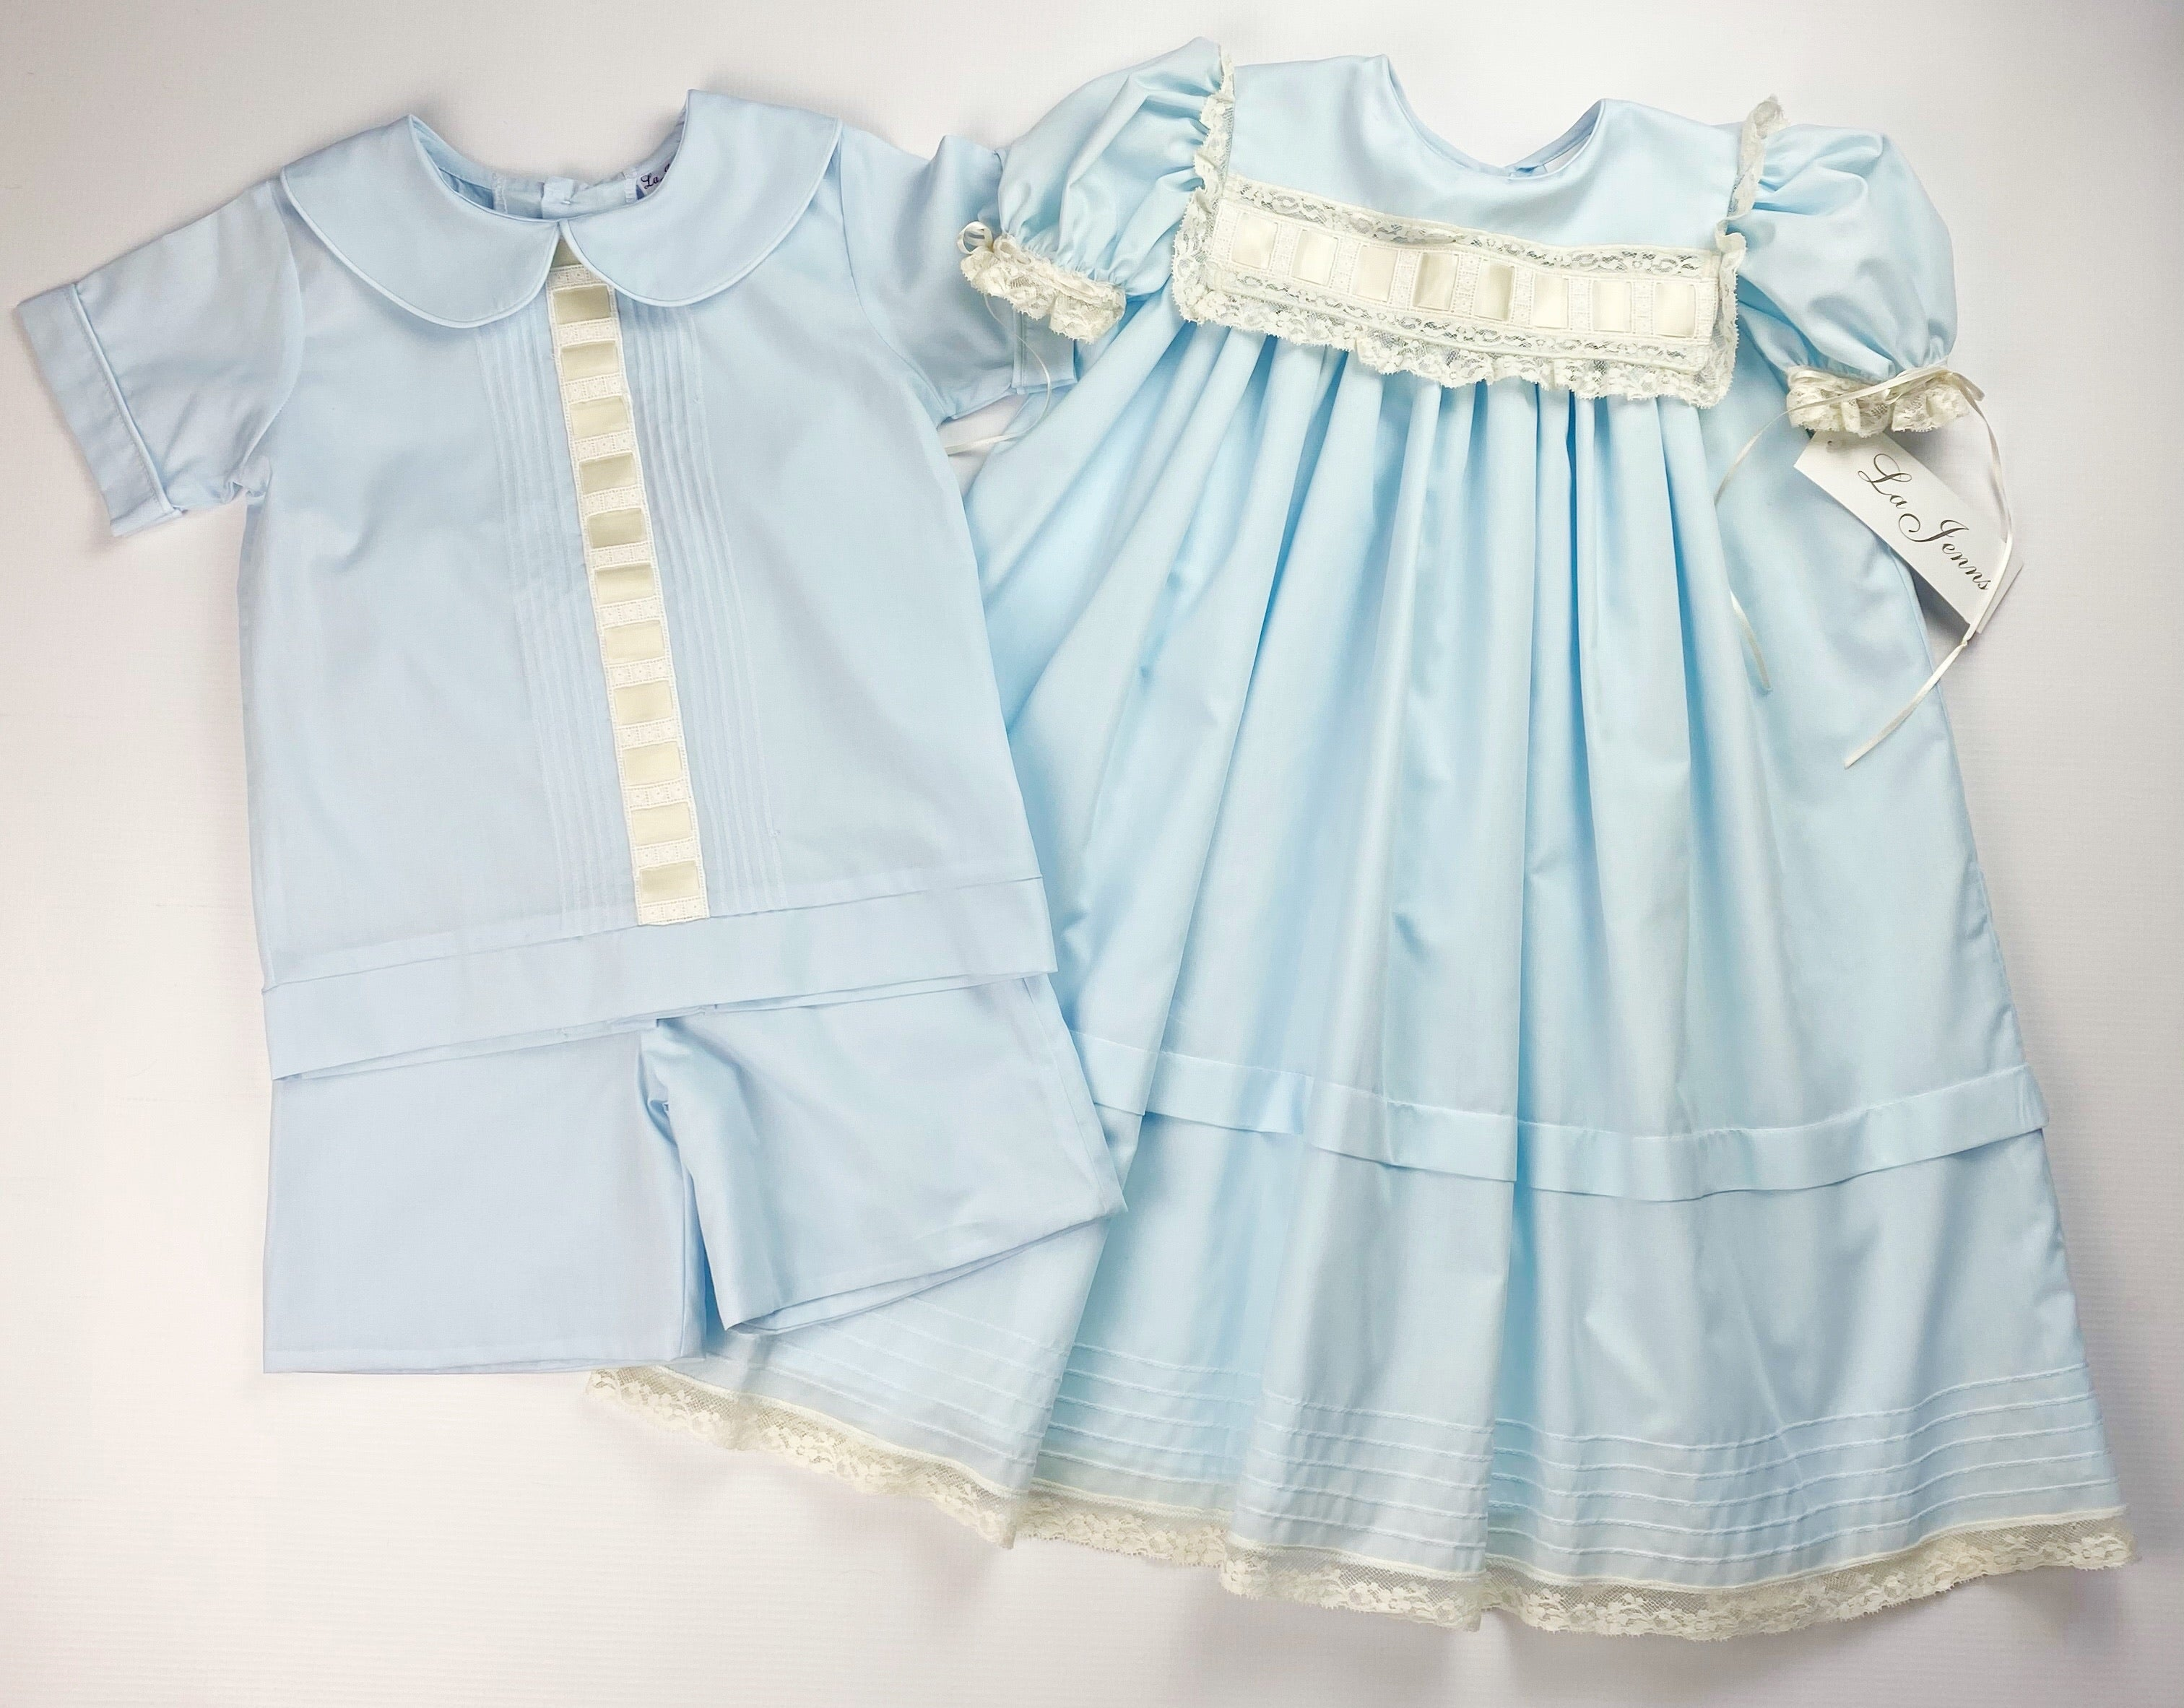 Heirloom Blue And Ivory Peter Pan Short Set (3T,4T)